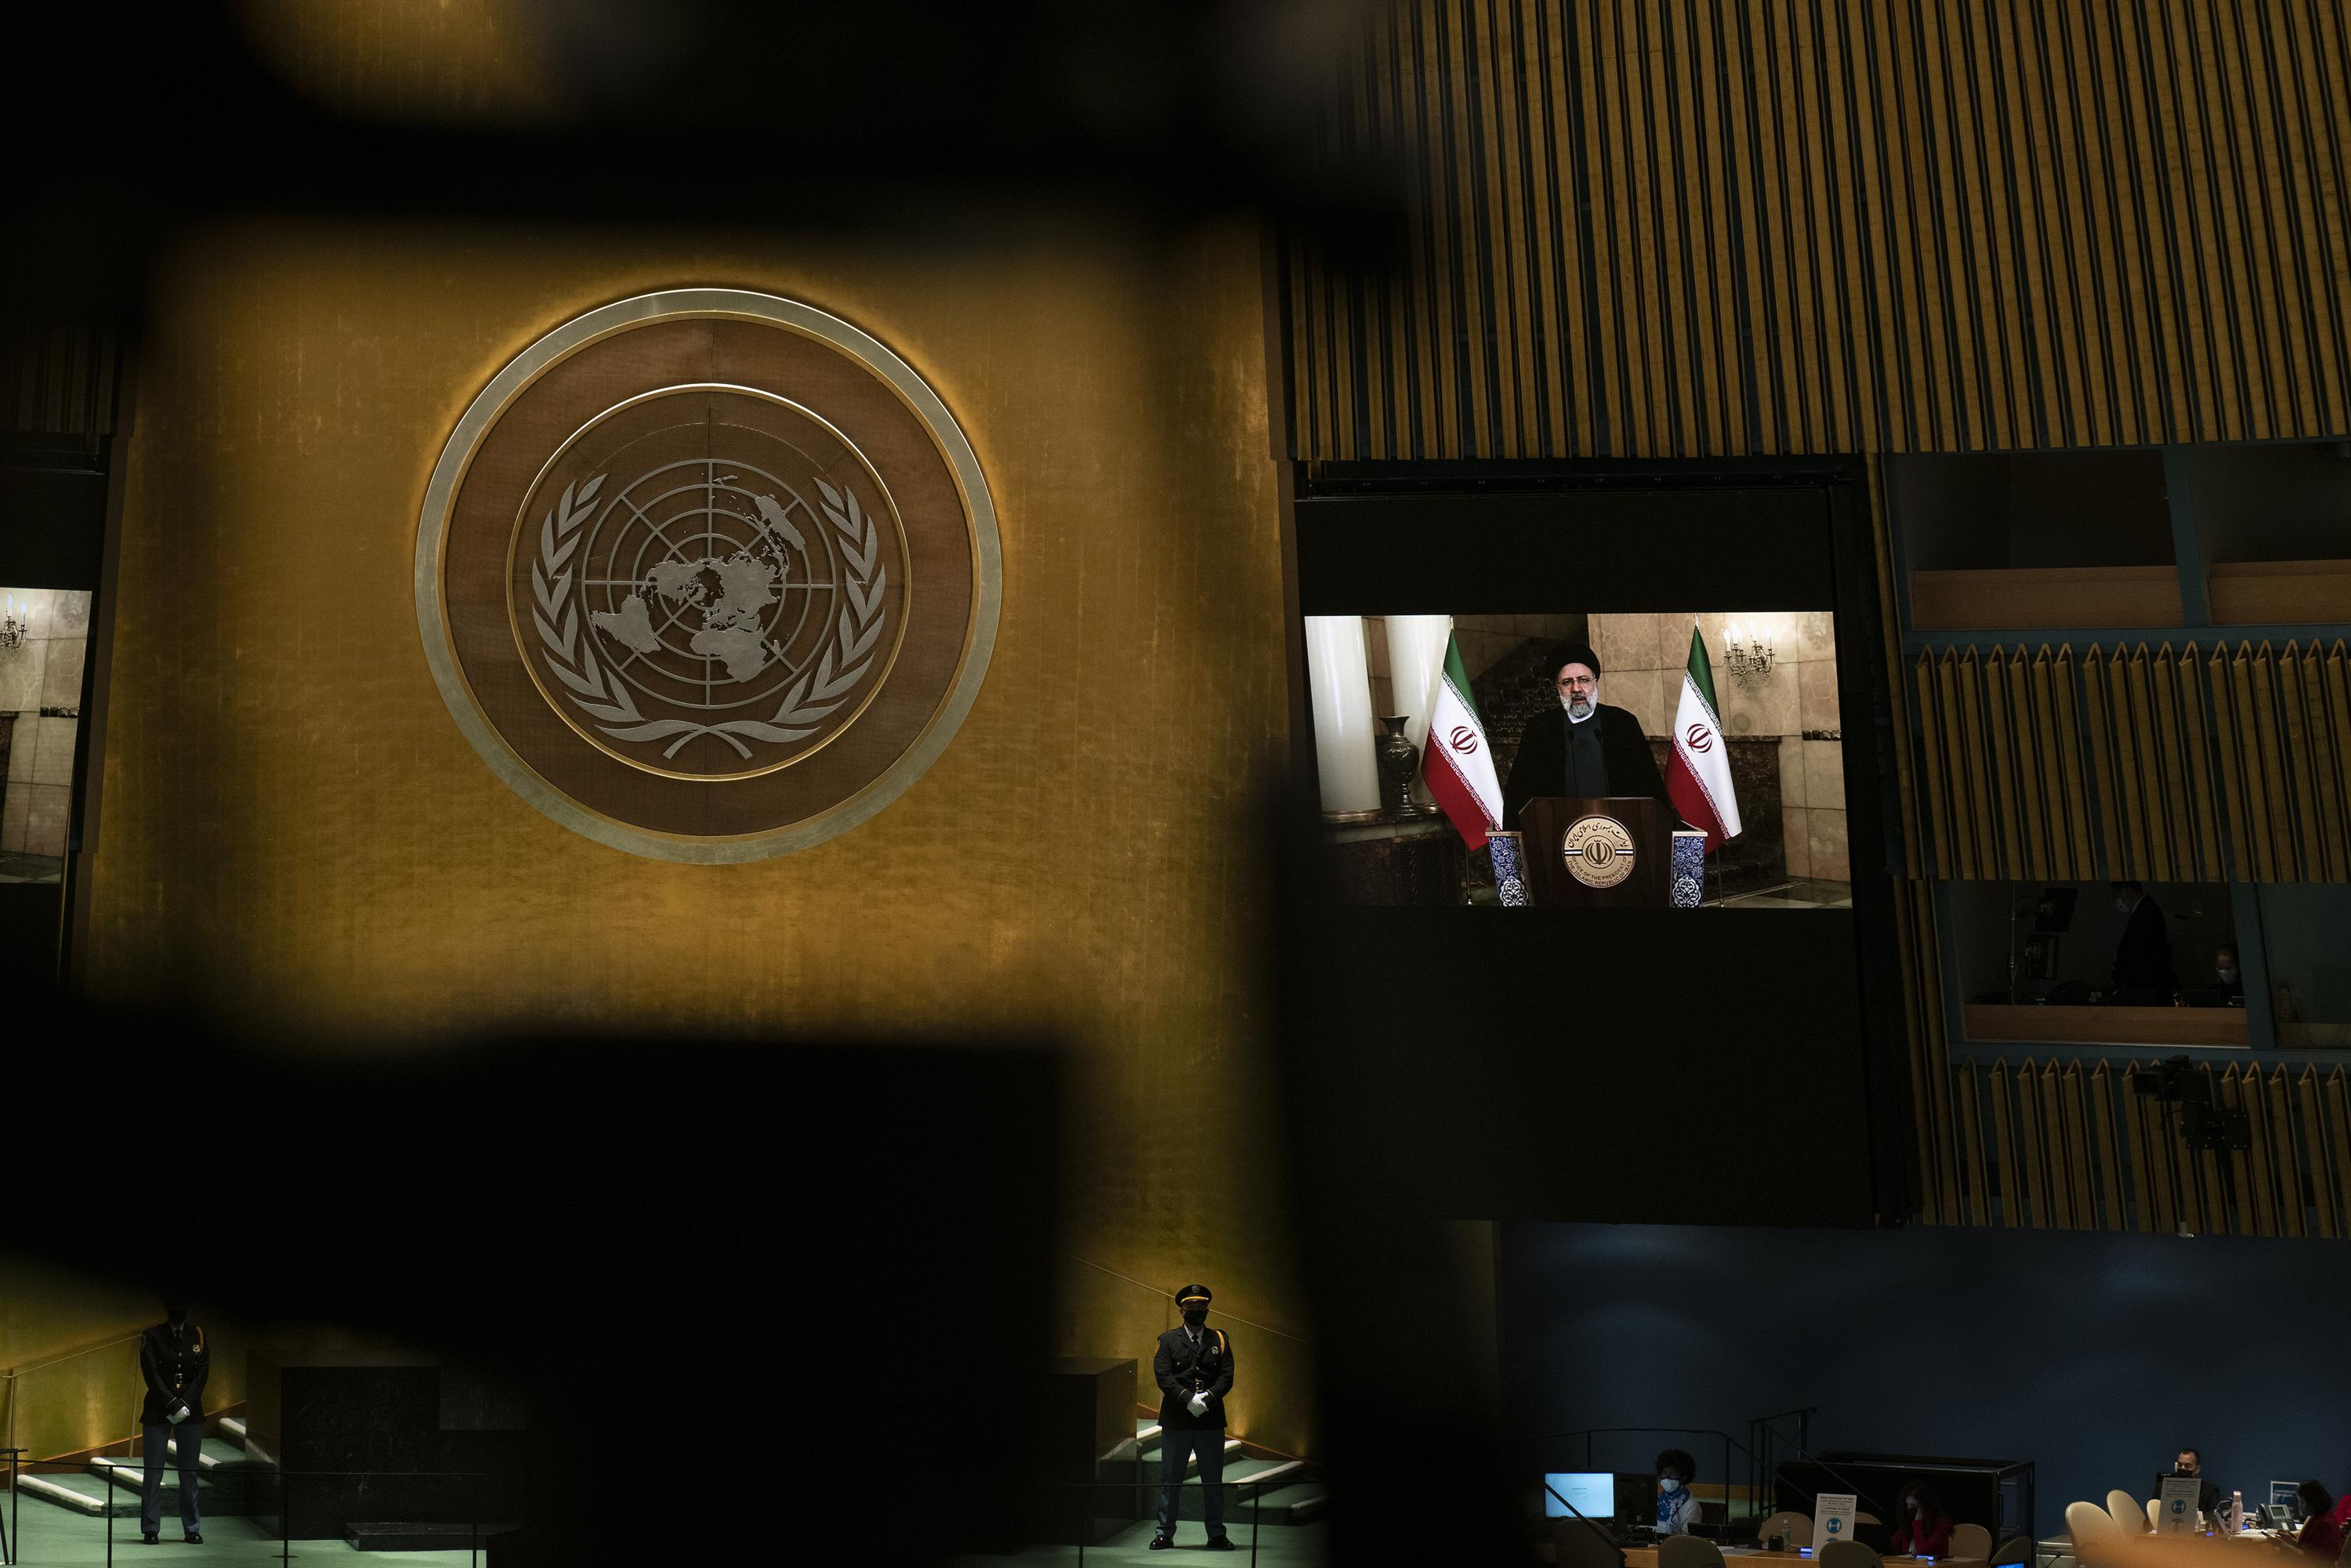 Iran's president slams US in first speech to UN as leader